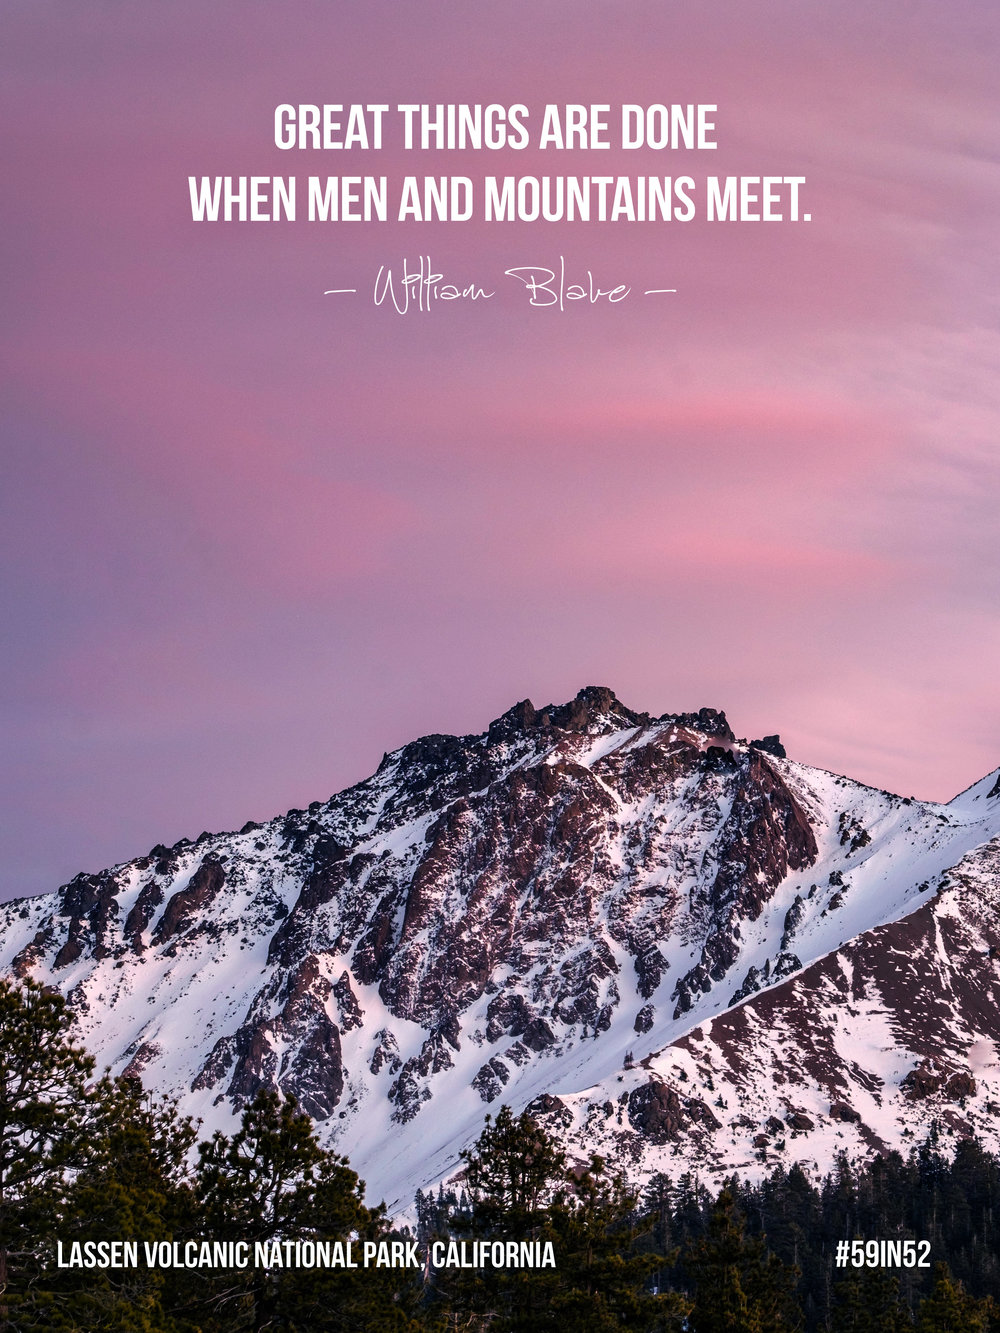 """Great things are done when men and mountains meet."" - William Blake"